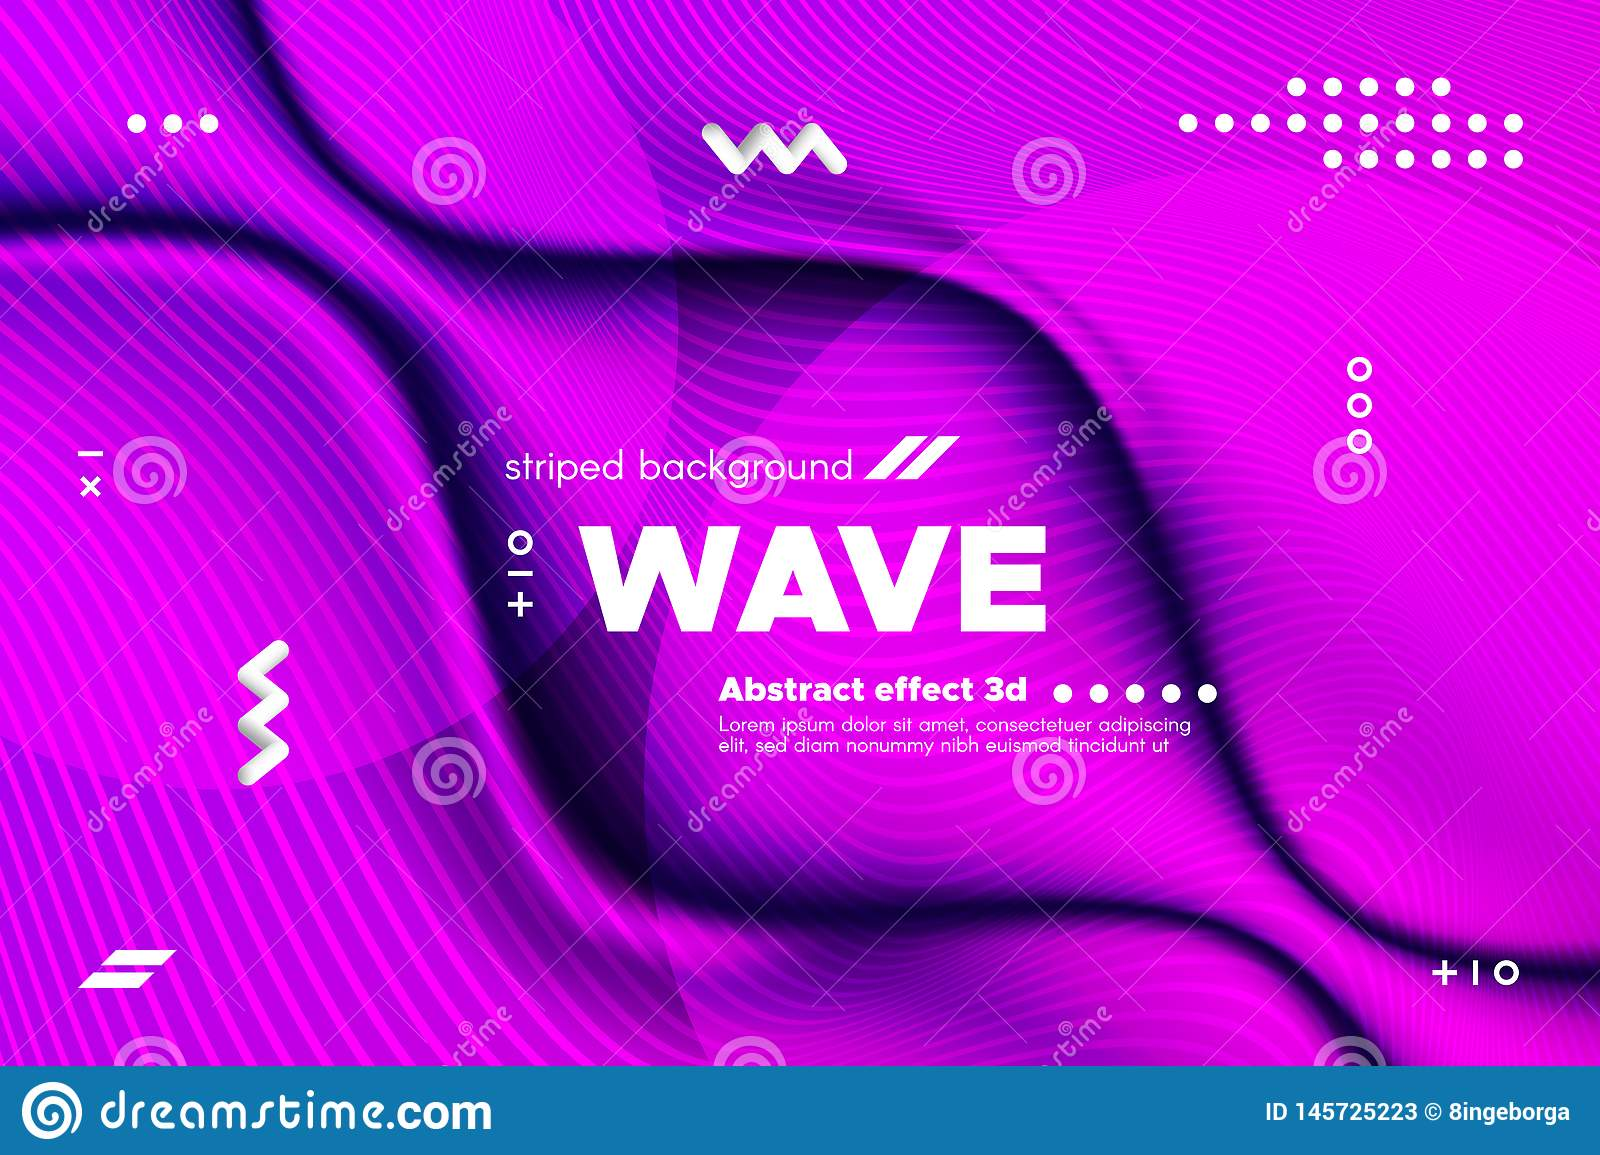 3d Distorted Wave Stripes and Ripple of Surface.